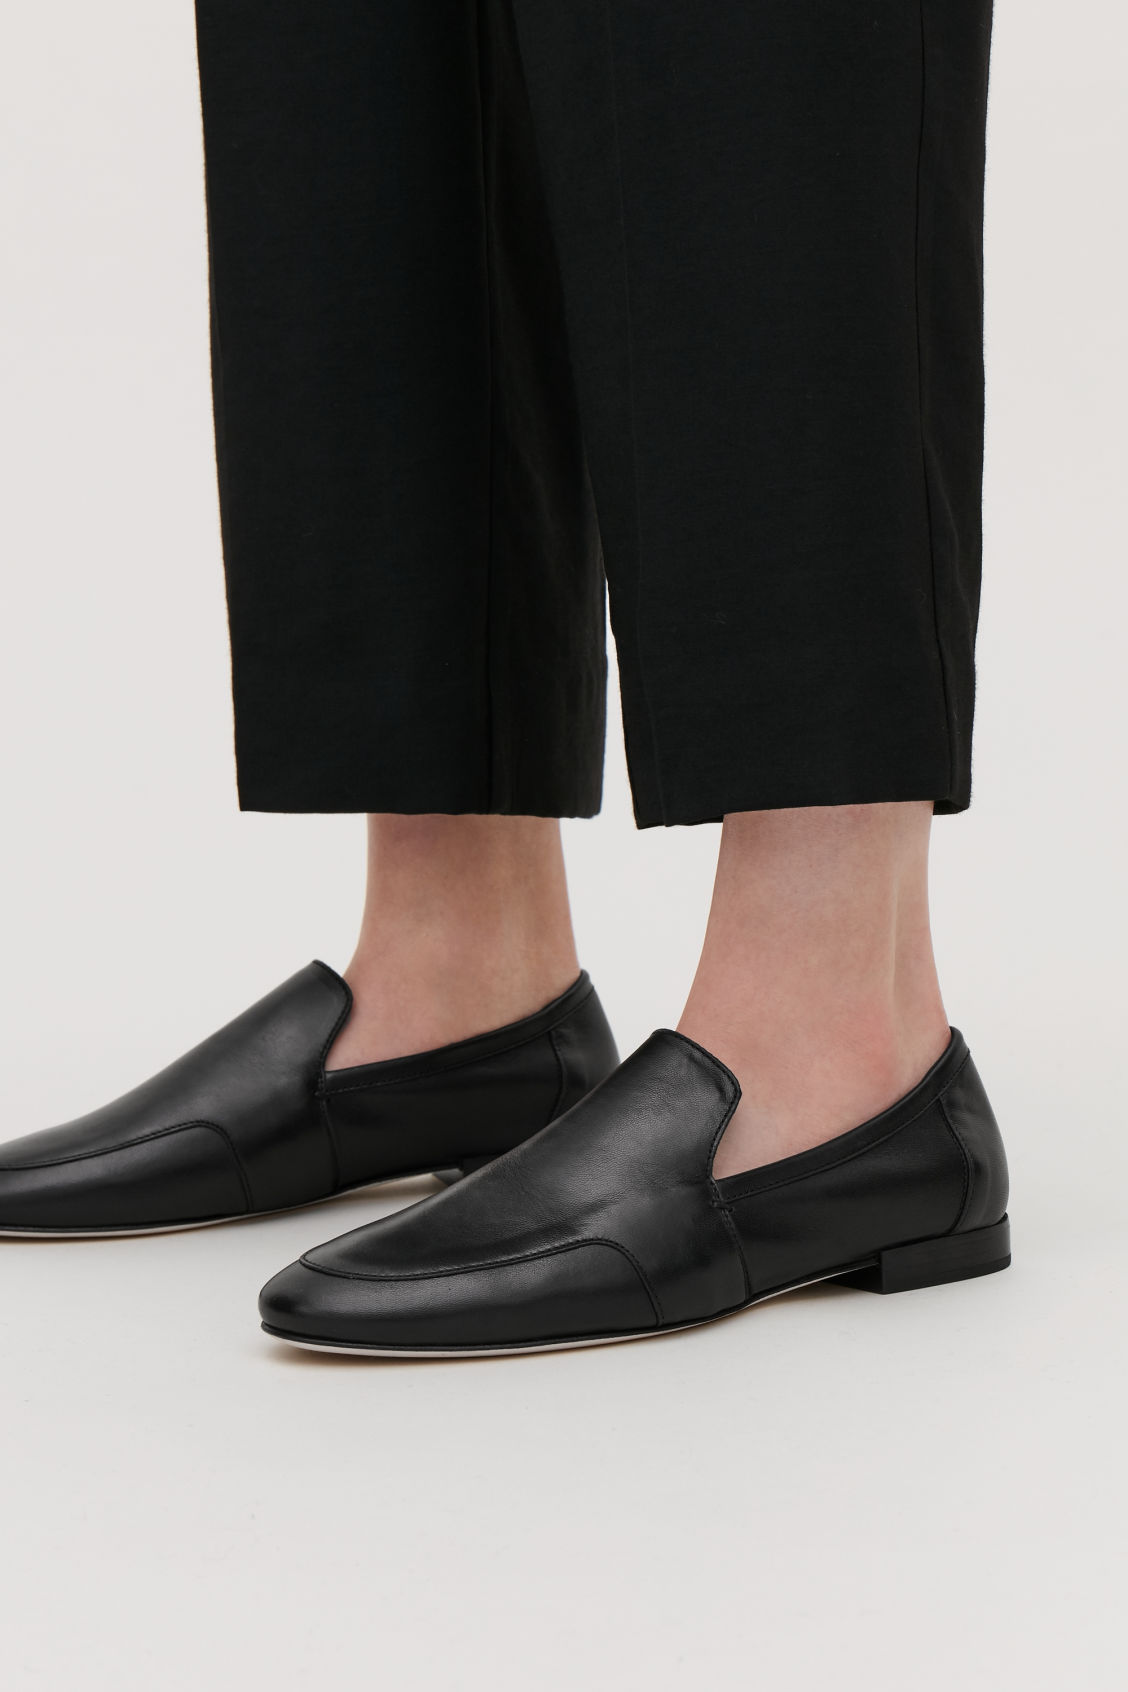 Detailed image of Cos soft loafers in black